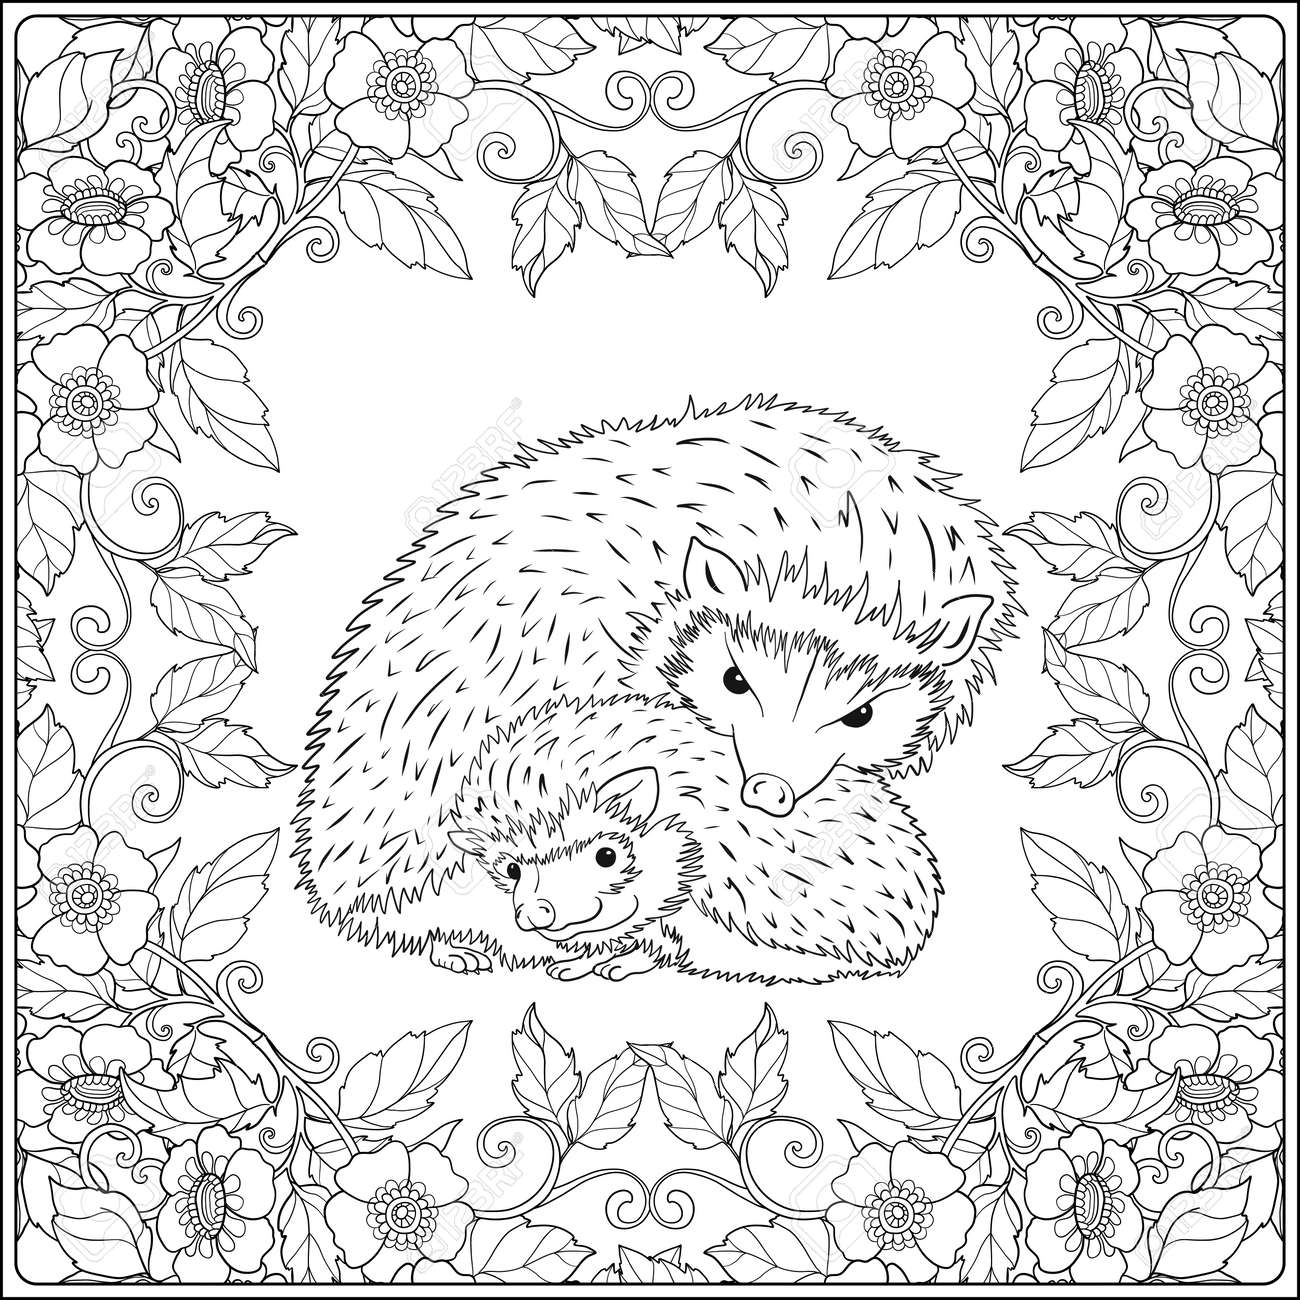 coloring page with lovely mother hedgehog and her small hedgehog